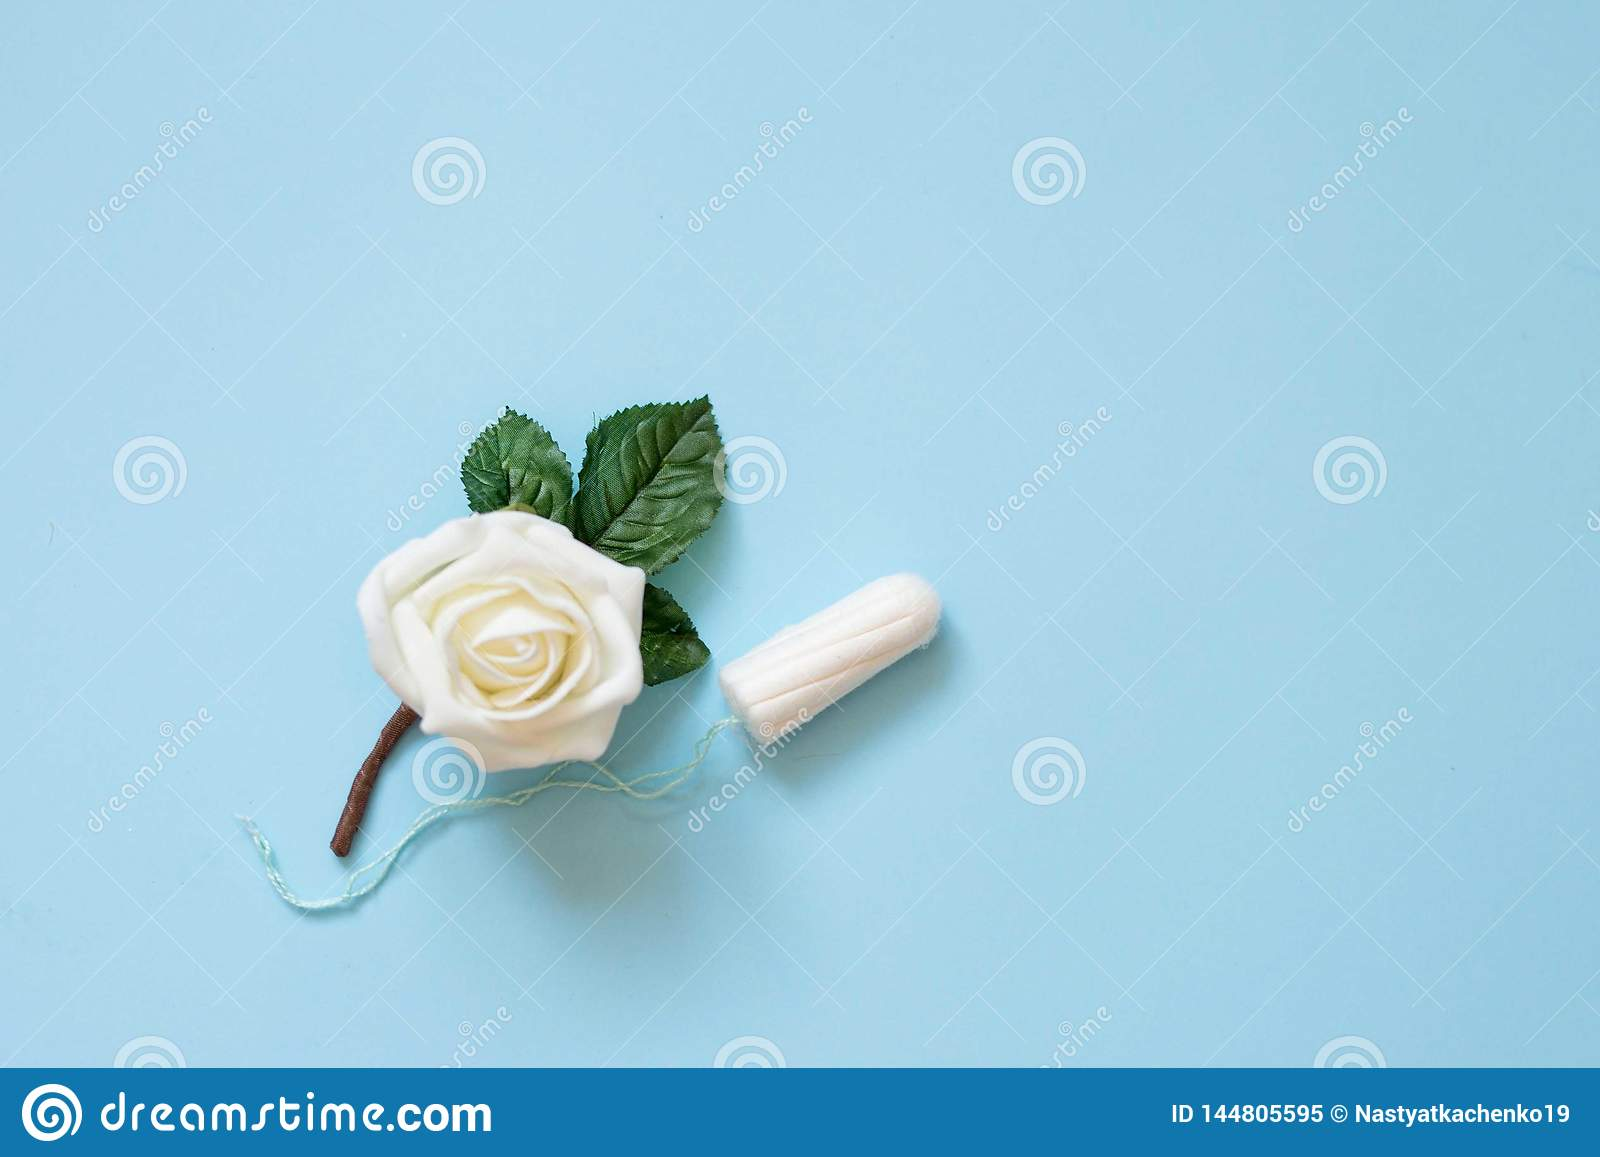 Tampon menstrual cotton pads on blue background with white flower . Woman hygiene conception photo. Soft tender protection for